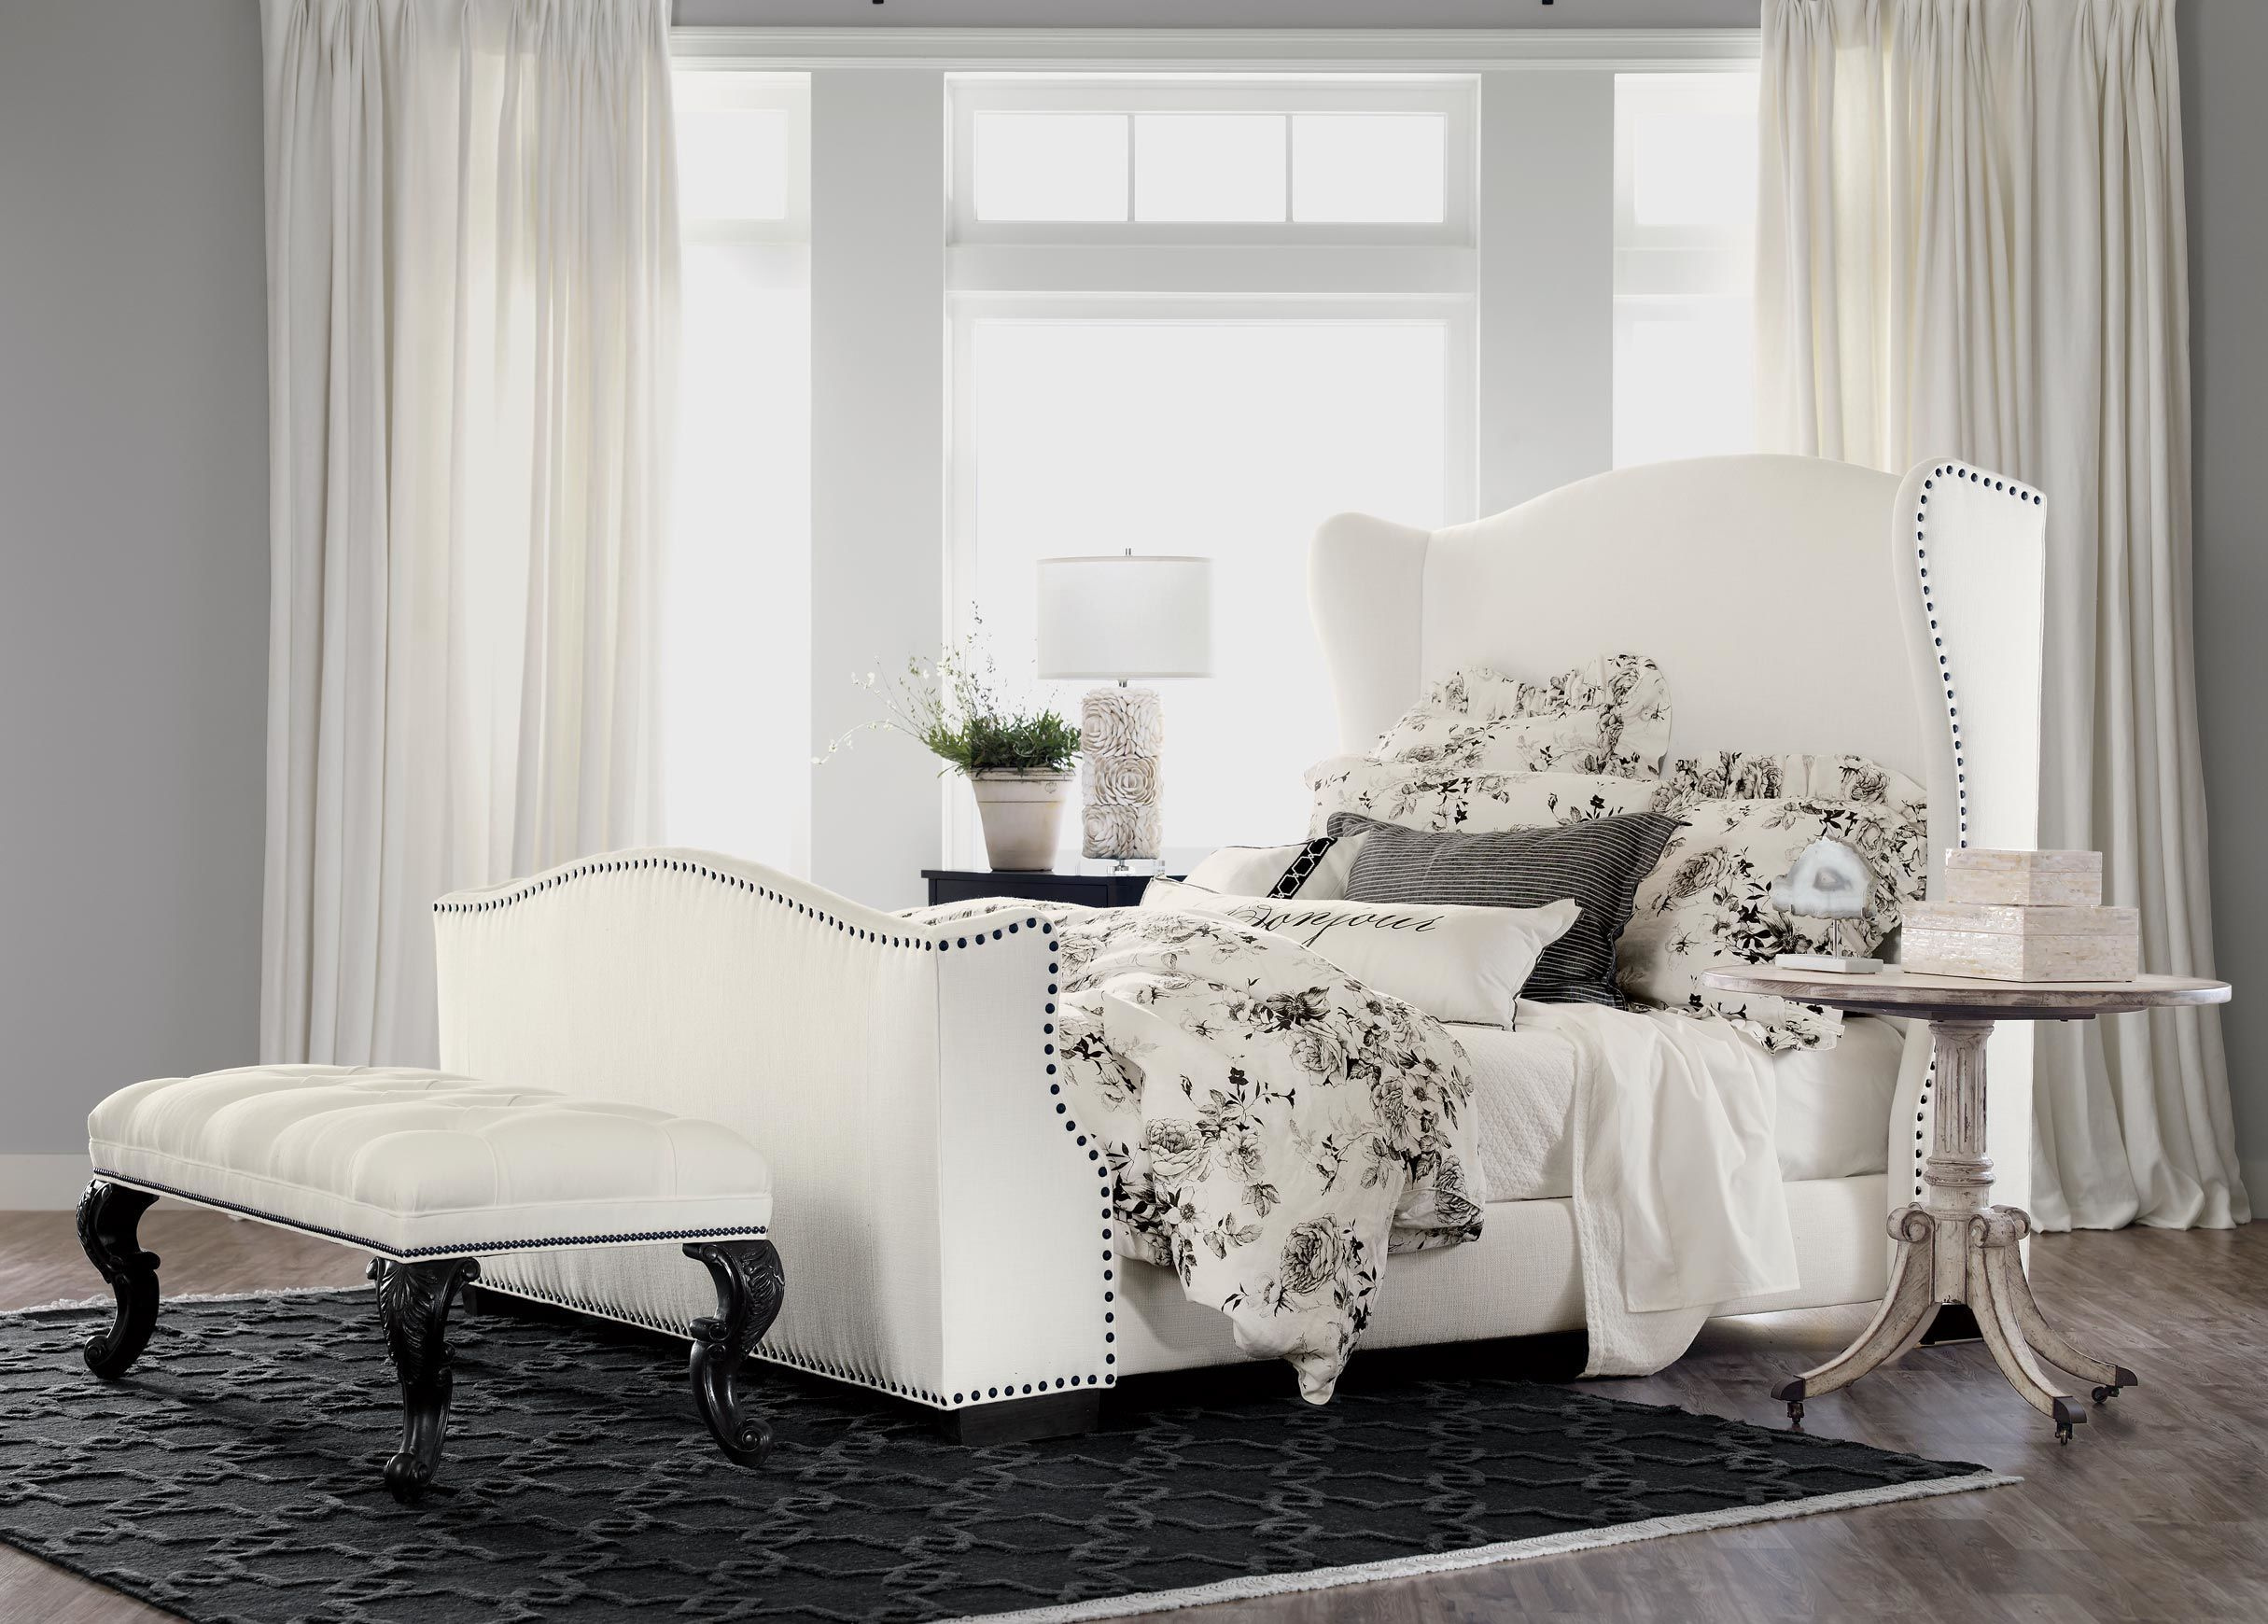 Ethan allen platform bed - Kayla Bed With Tall Footboard Beds Ethan Allen